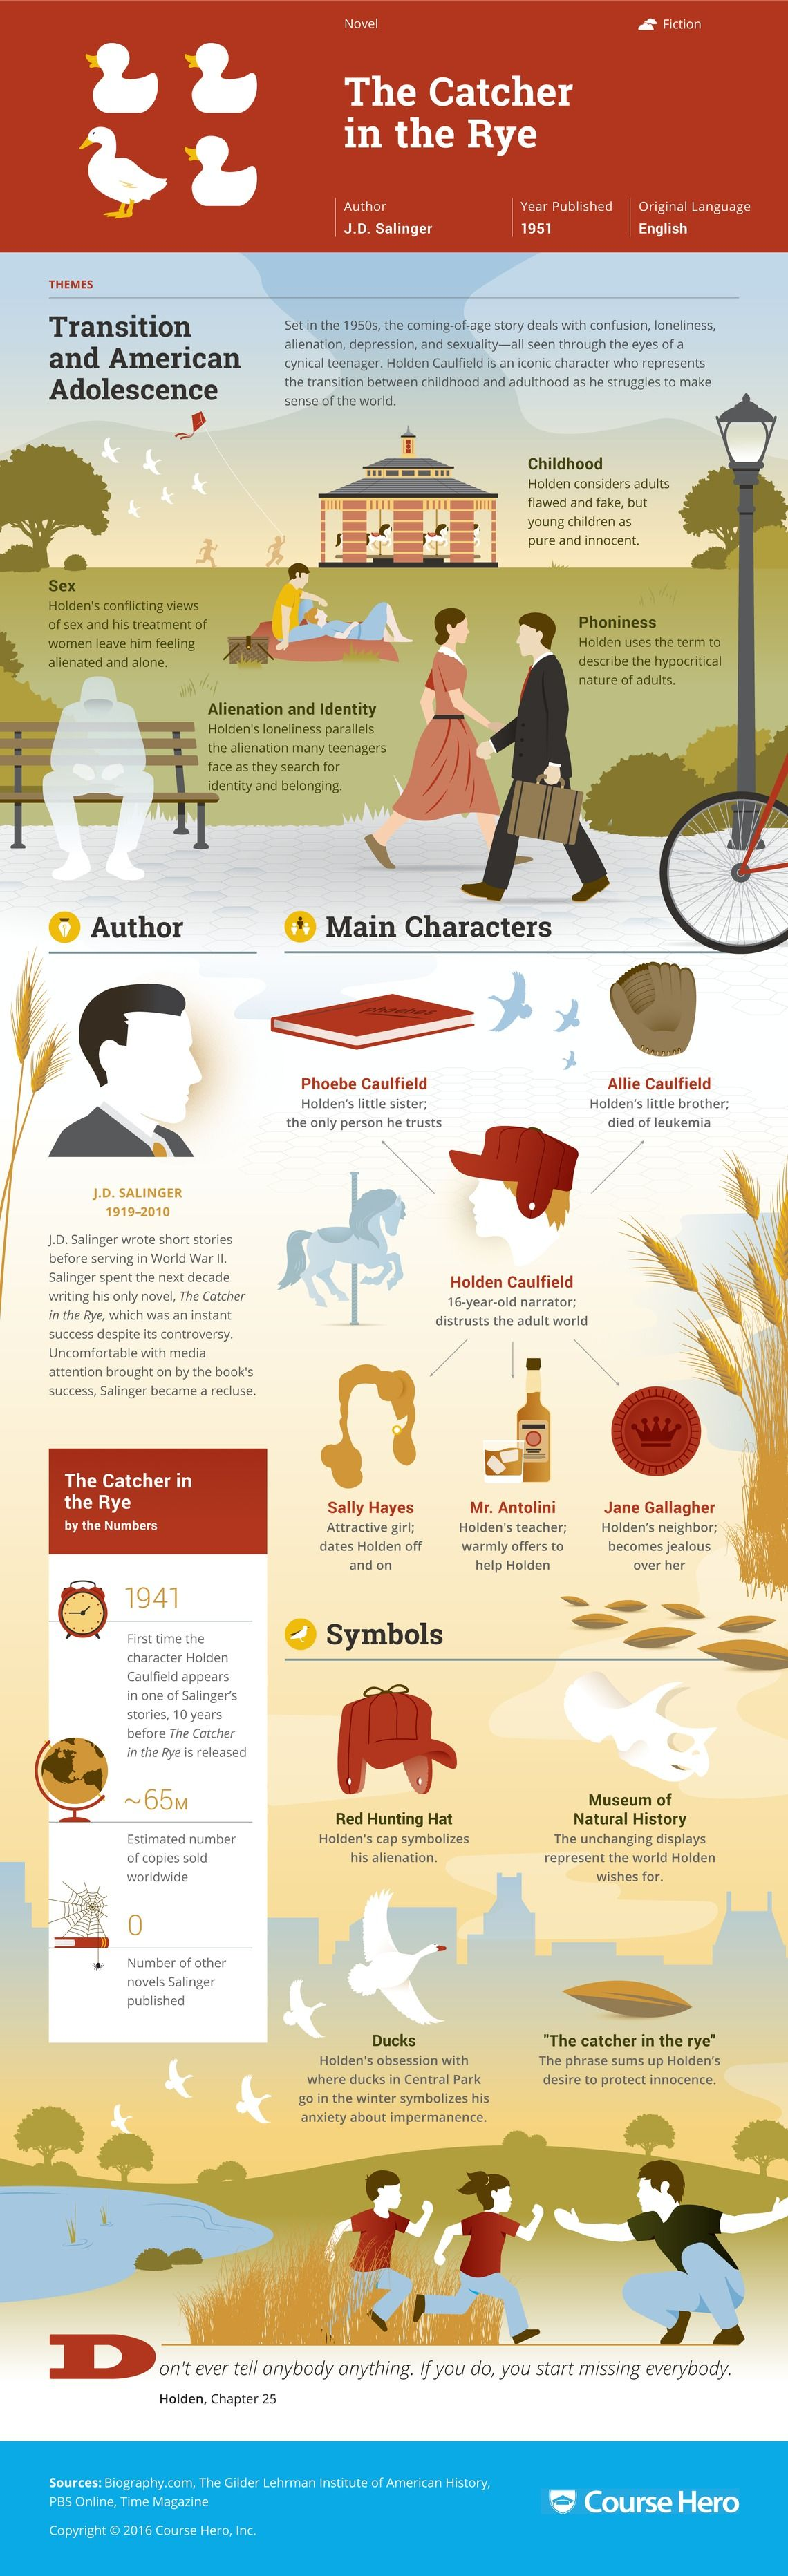 check out this awesome the catcher in the rye infographic from study guide for j d salinger s the catcher in the rye including chapter summary character analysis and more learn all about the catcher in the rye